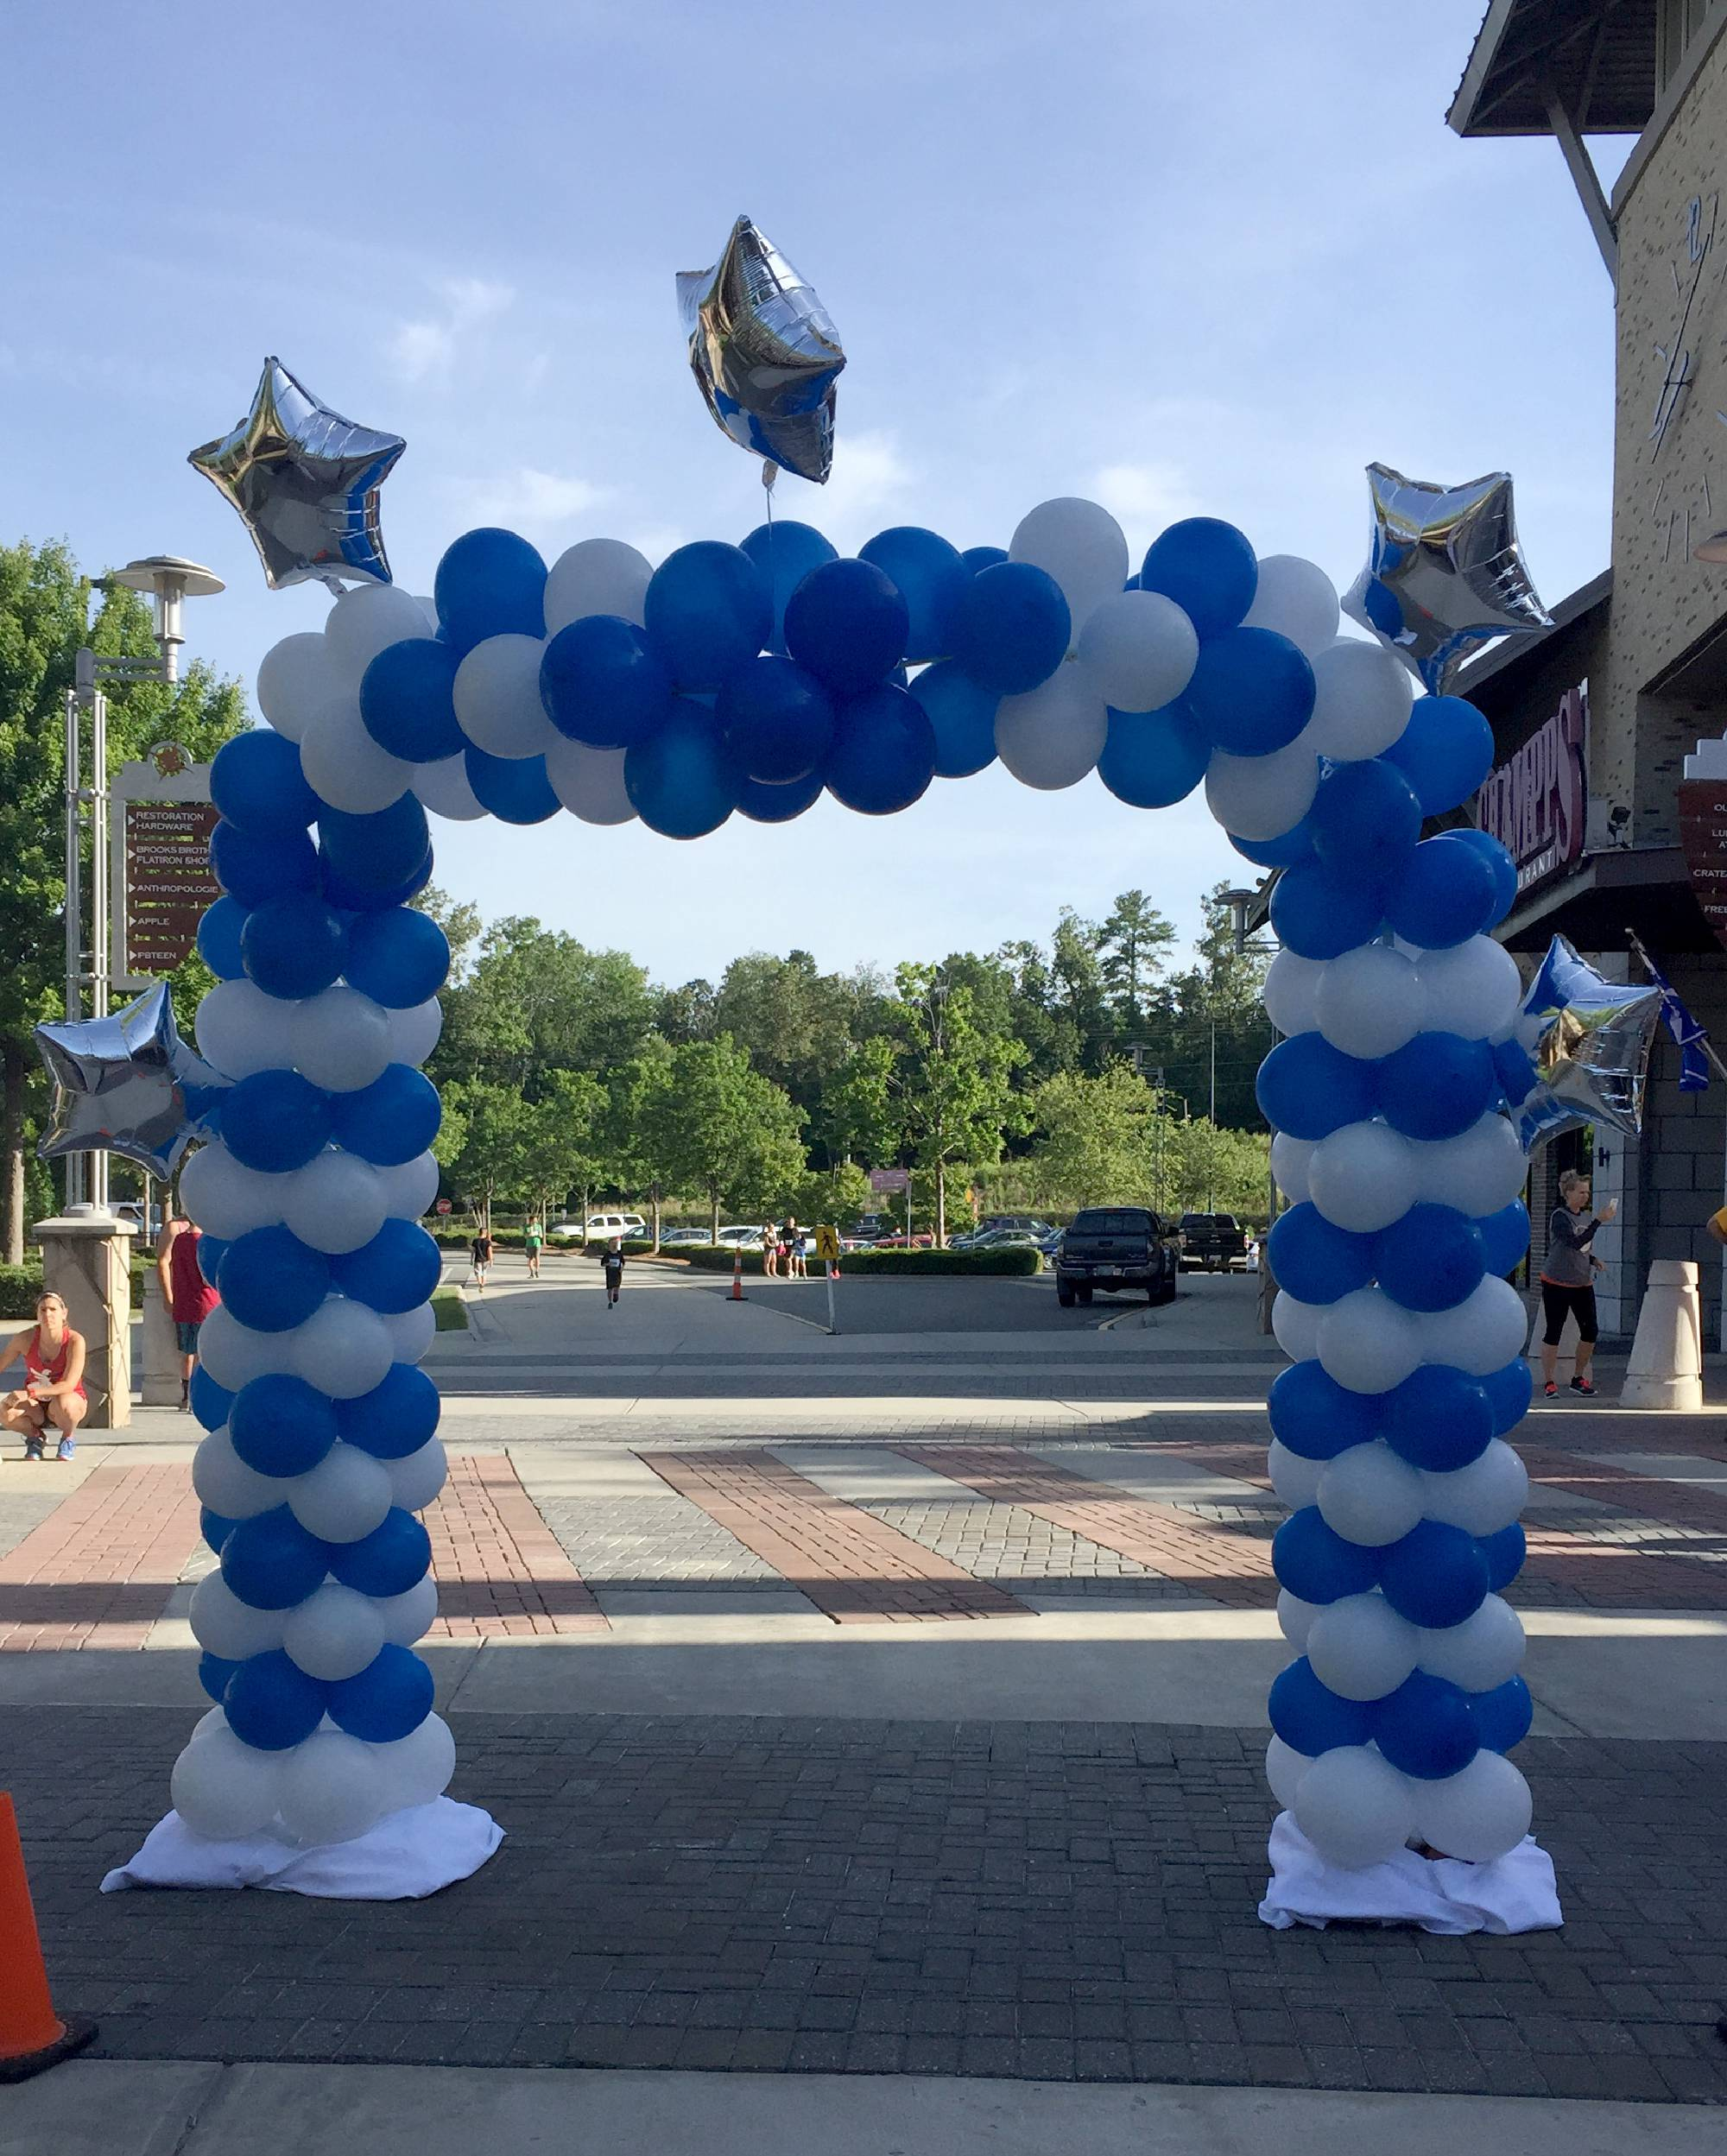 Balloon arch for 5K road race in Durham